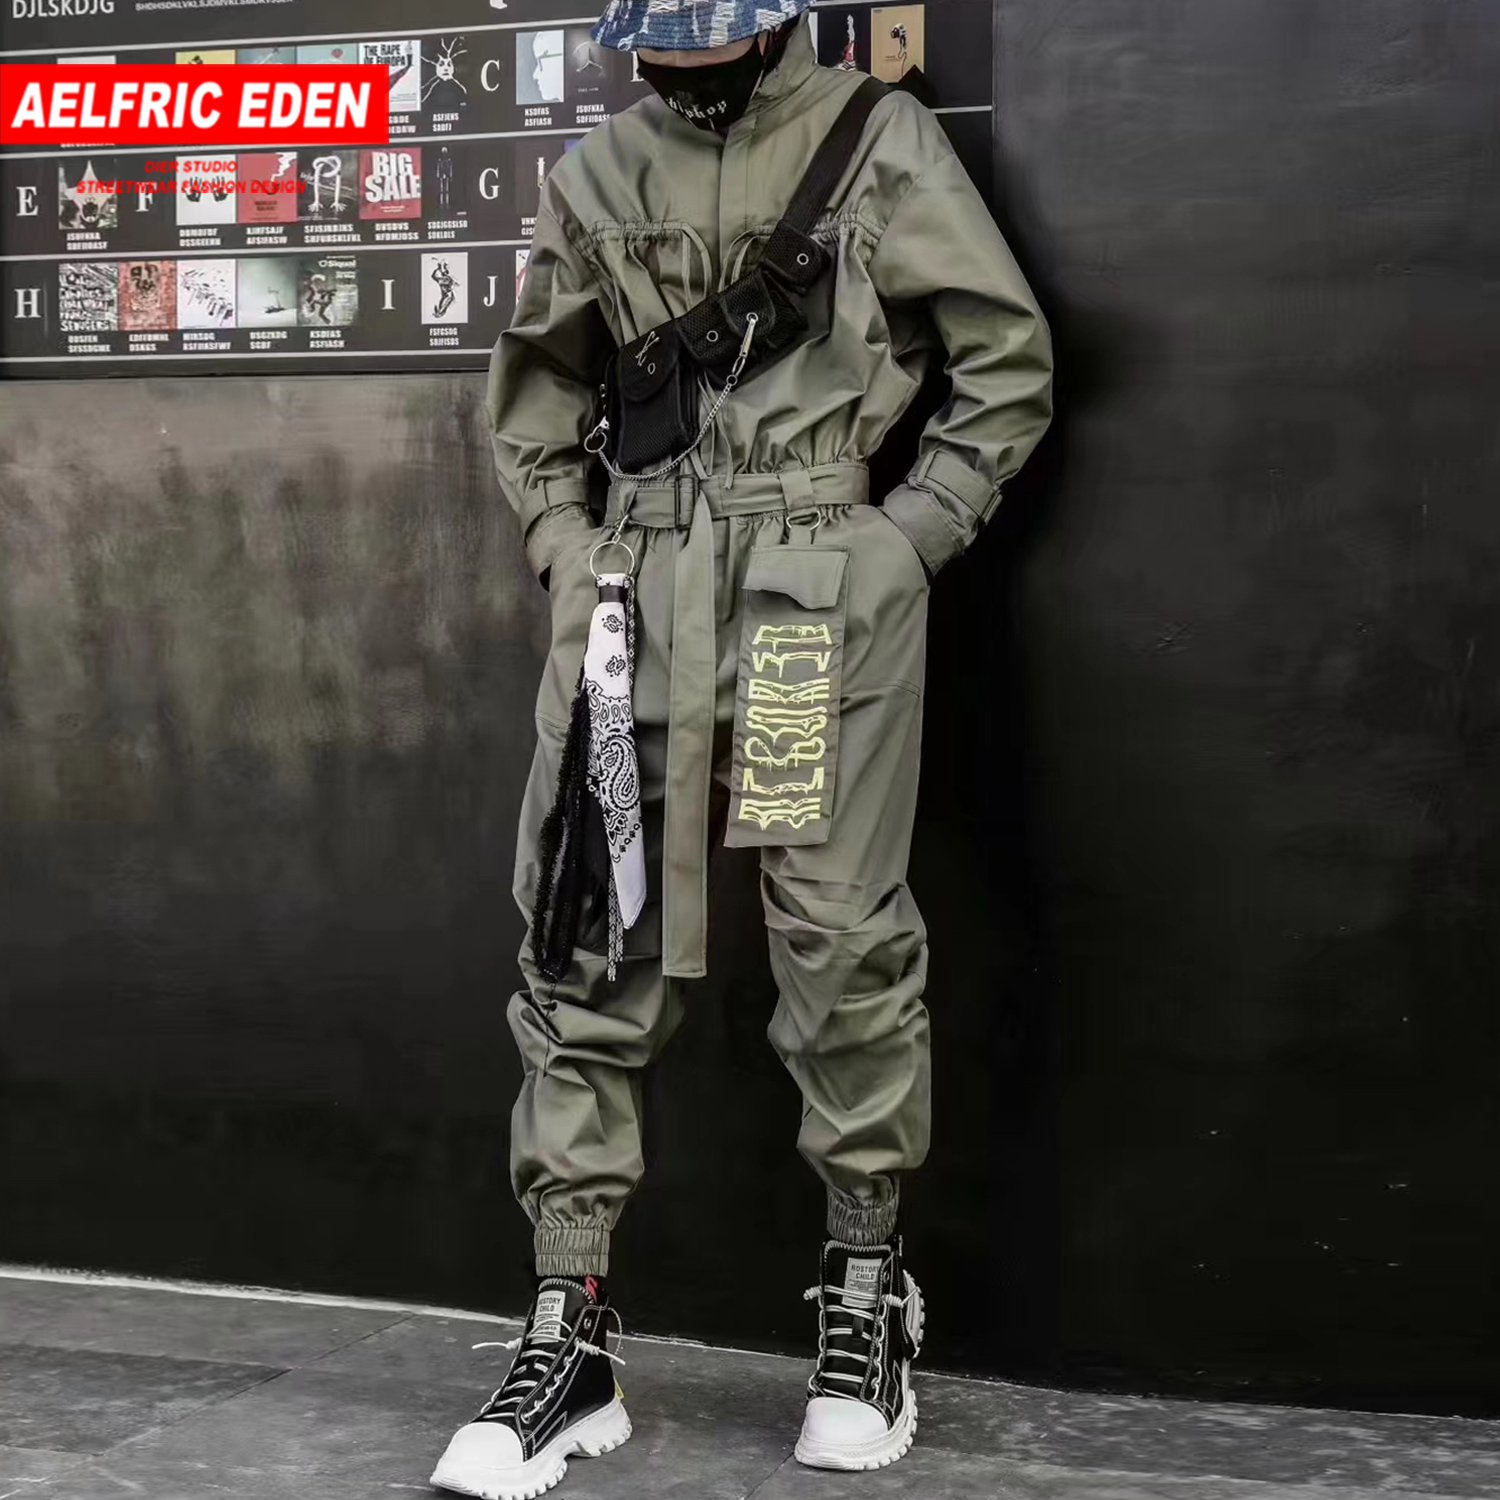 Aelfric Eden 2020 Hip Hop Streetwear Jumpsuits Men Ribbon Embroidered Cargo Pants Long Sleeve Rompers Joggers Techwear Men